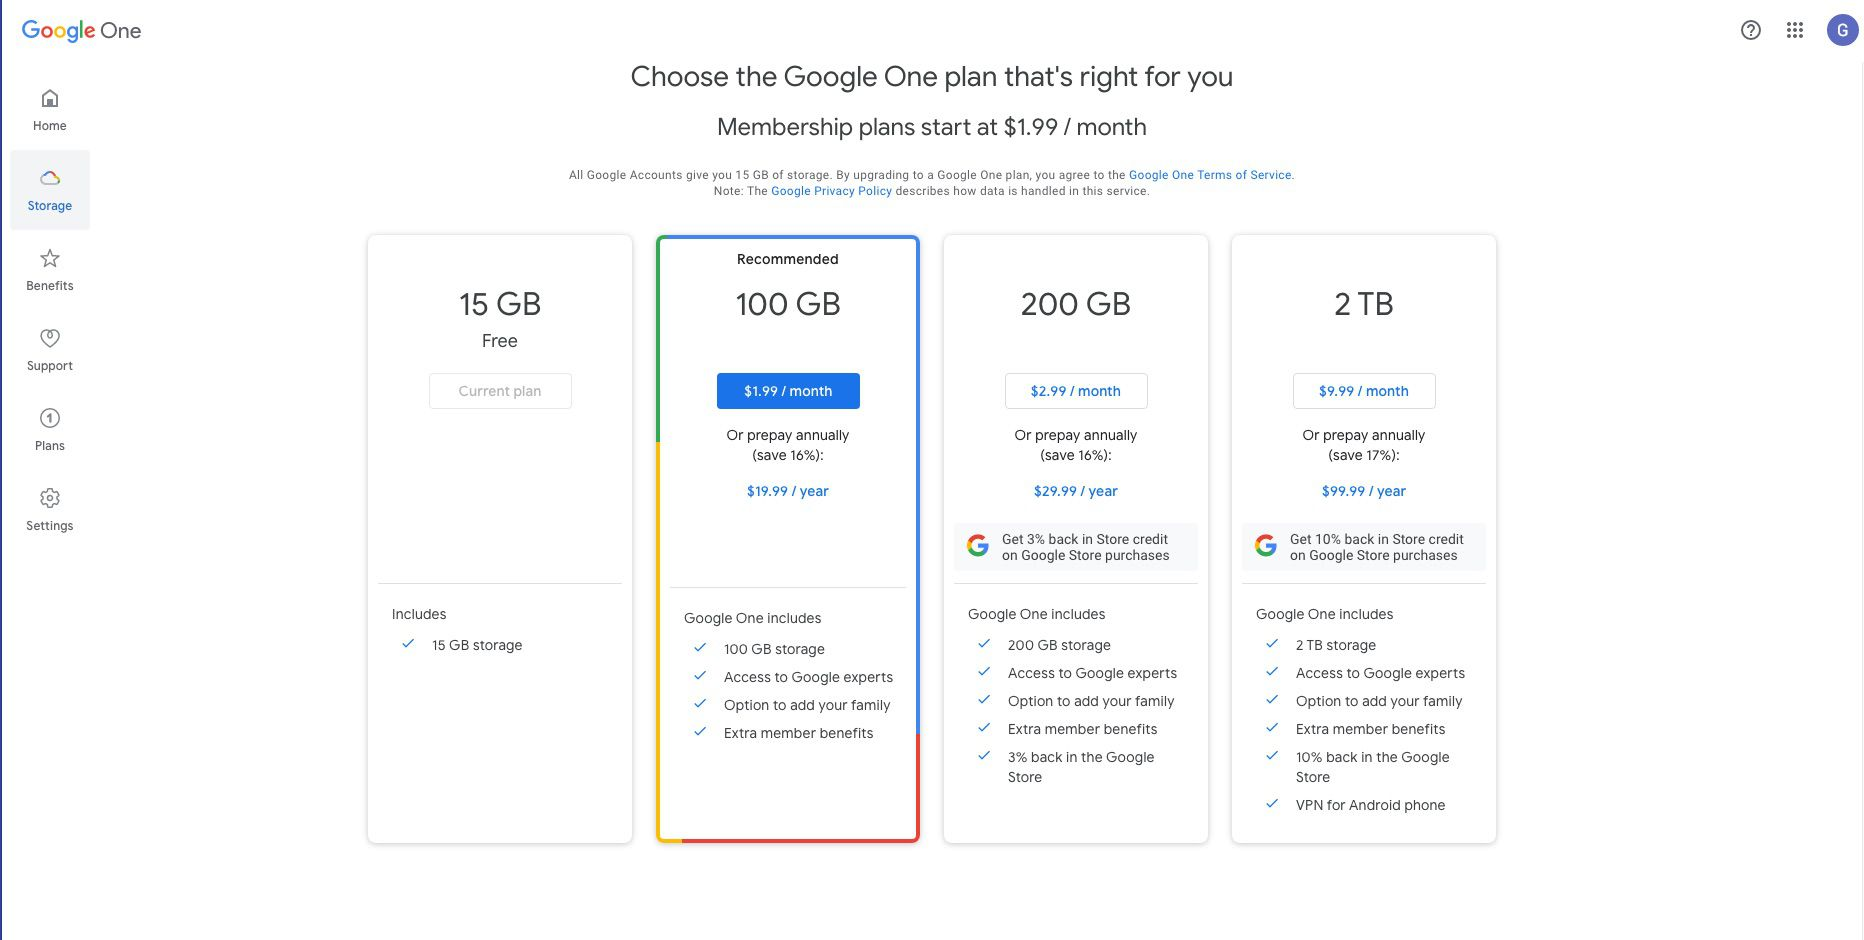 Google One subscription plans available